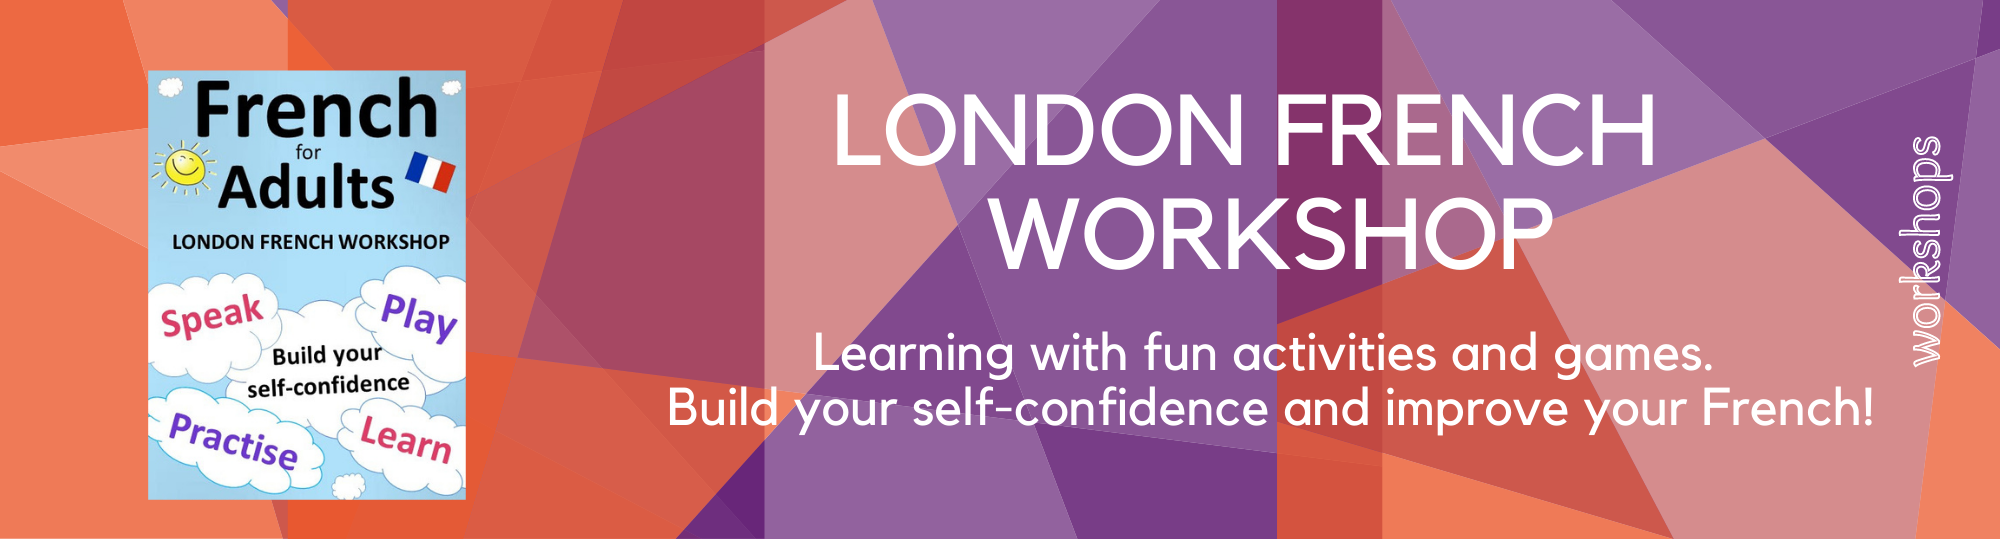 London French Workshop - Adults